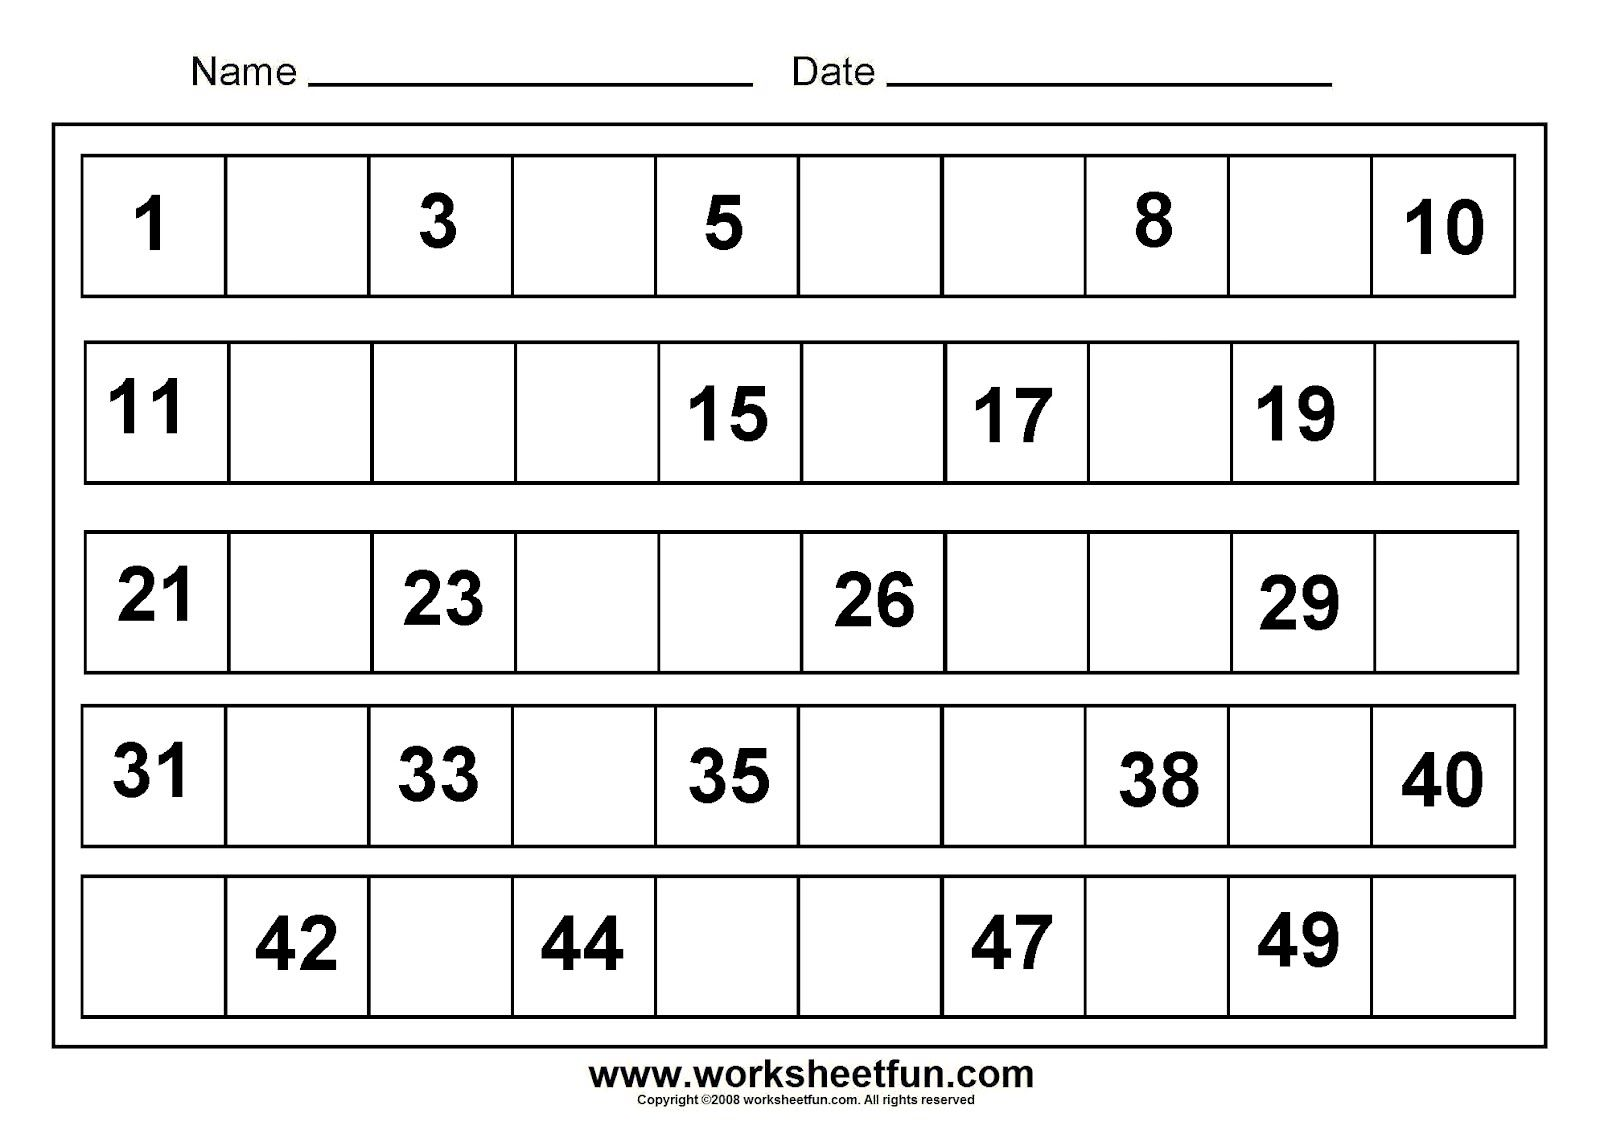 Worksheets Kindergarten Math Printable Worksheets free math worksheets kindergarten pichaglobal 1000 images about work sheets on pinterest count kindergarten